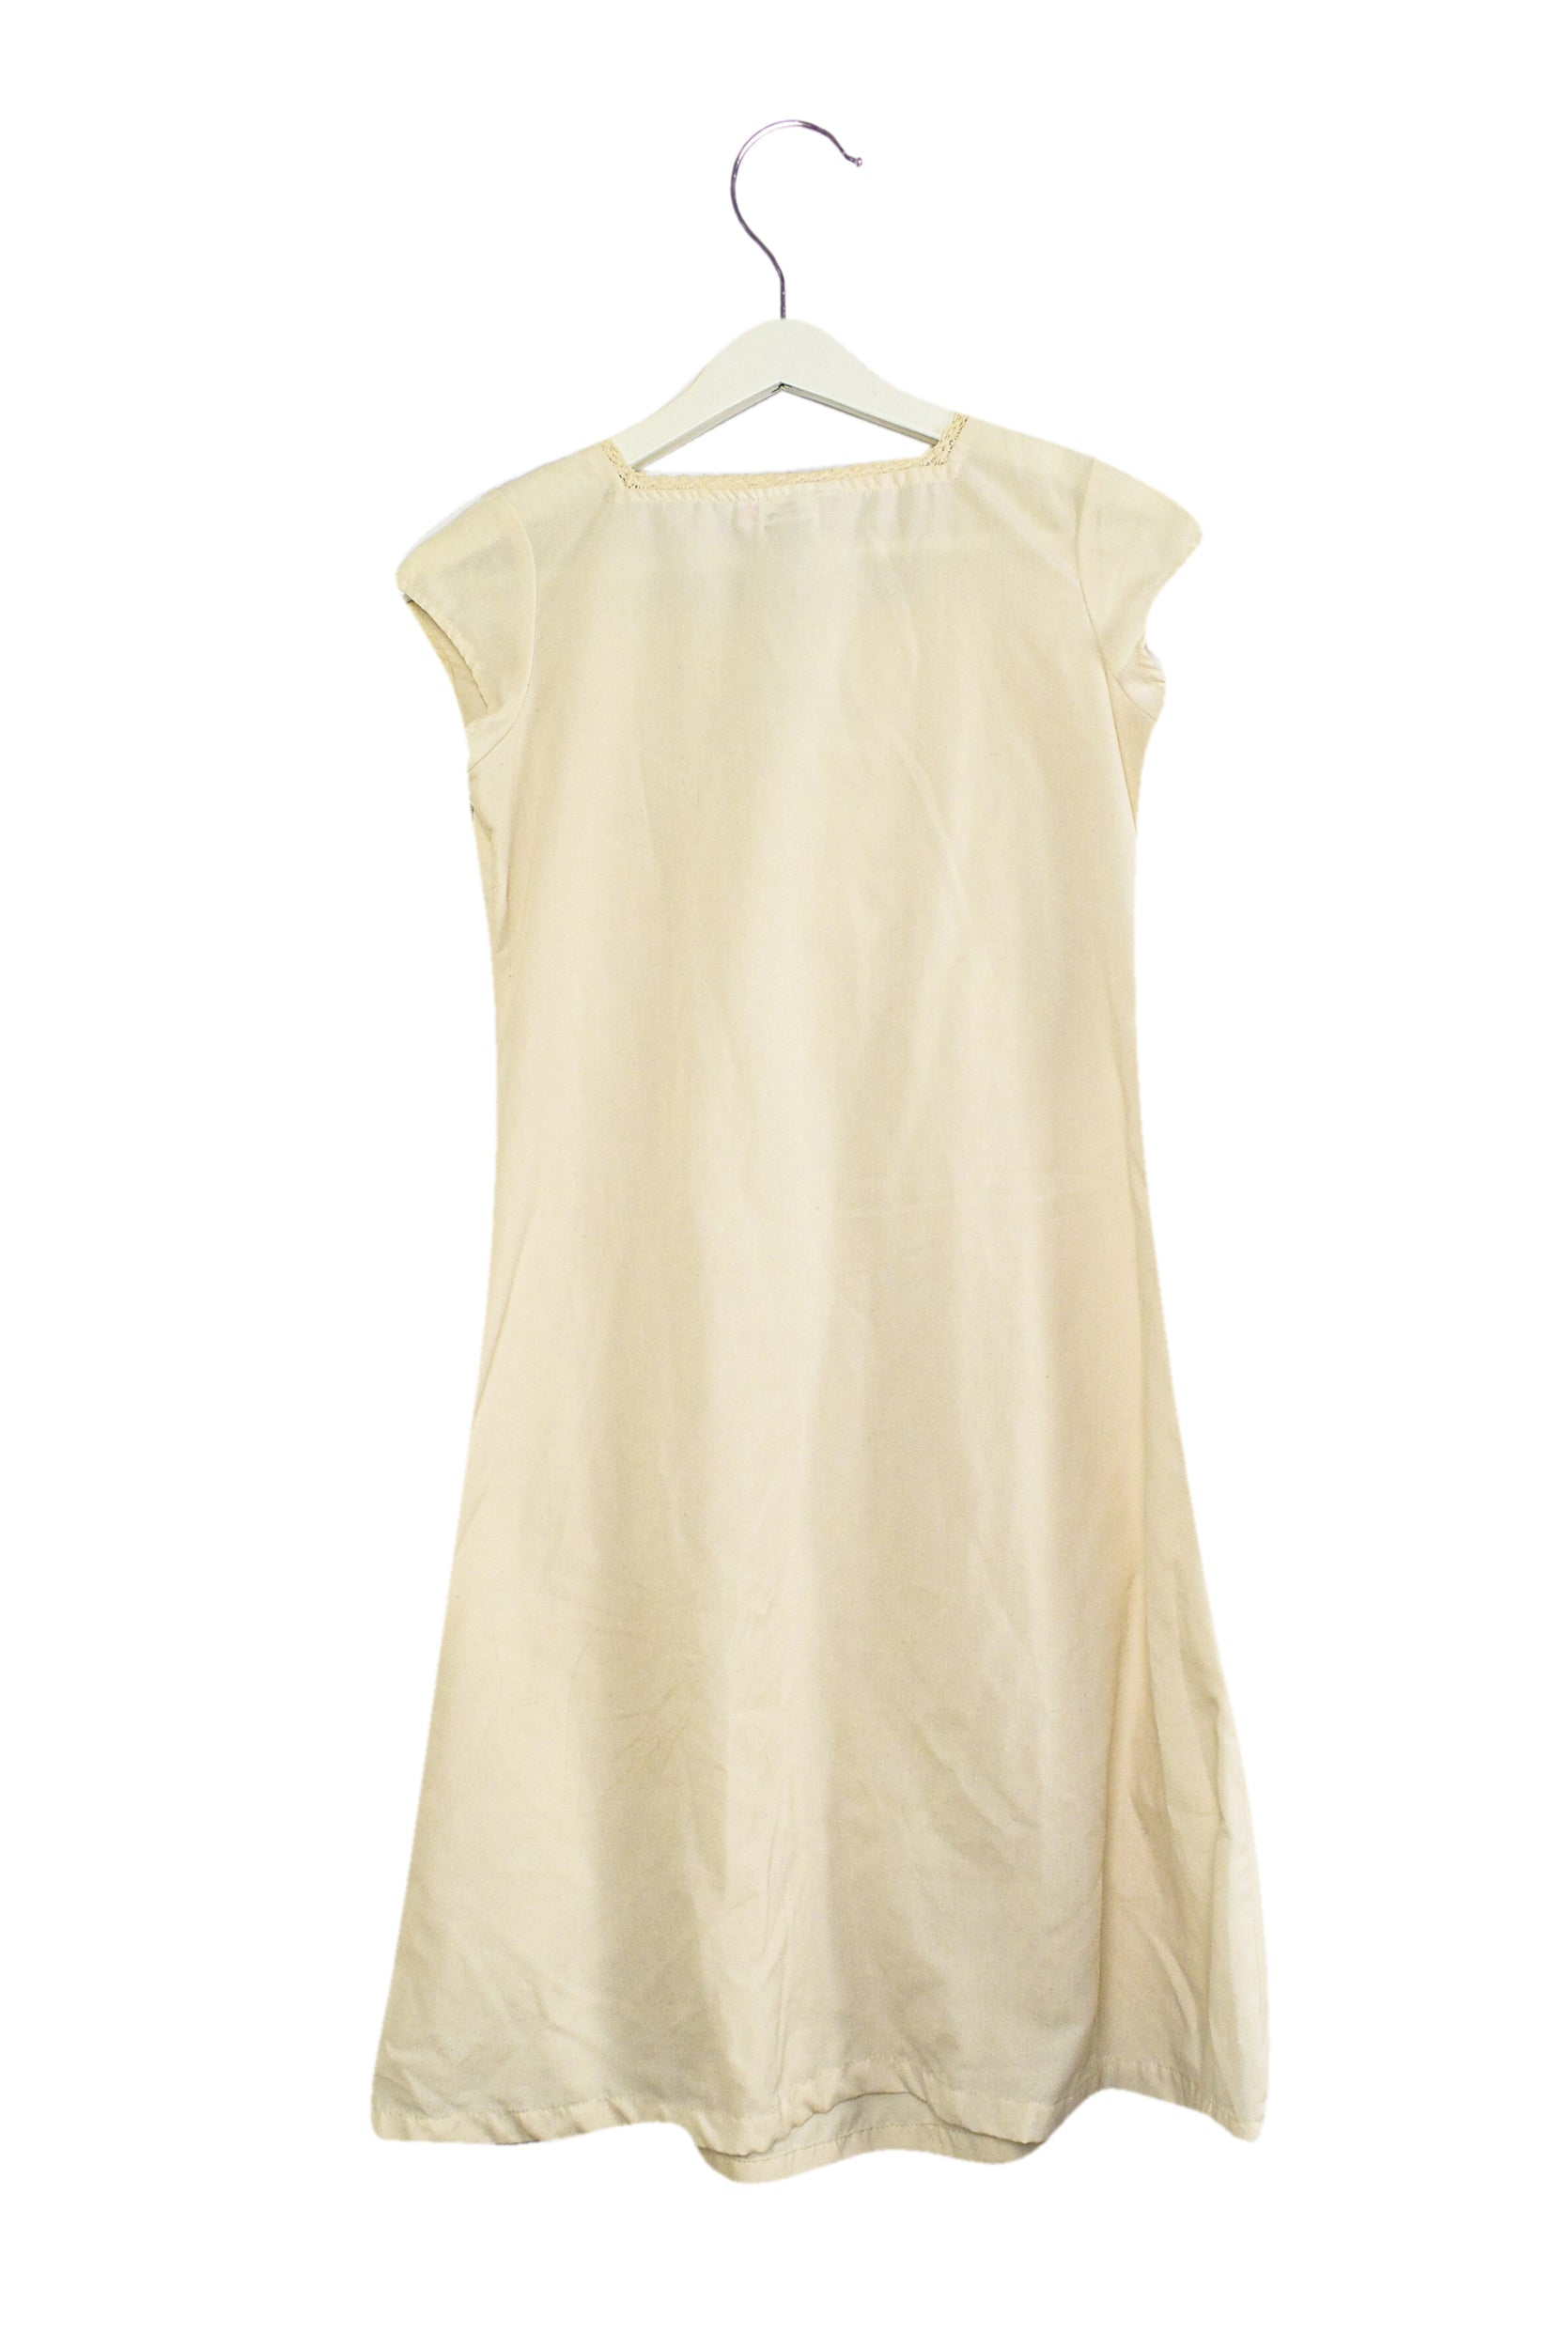 American Girl Sleeveless Dress 7Y - 8Y